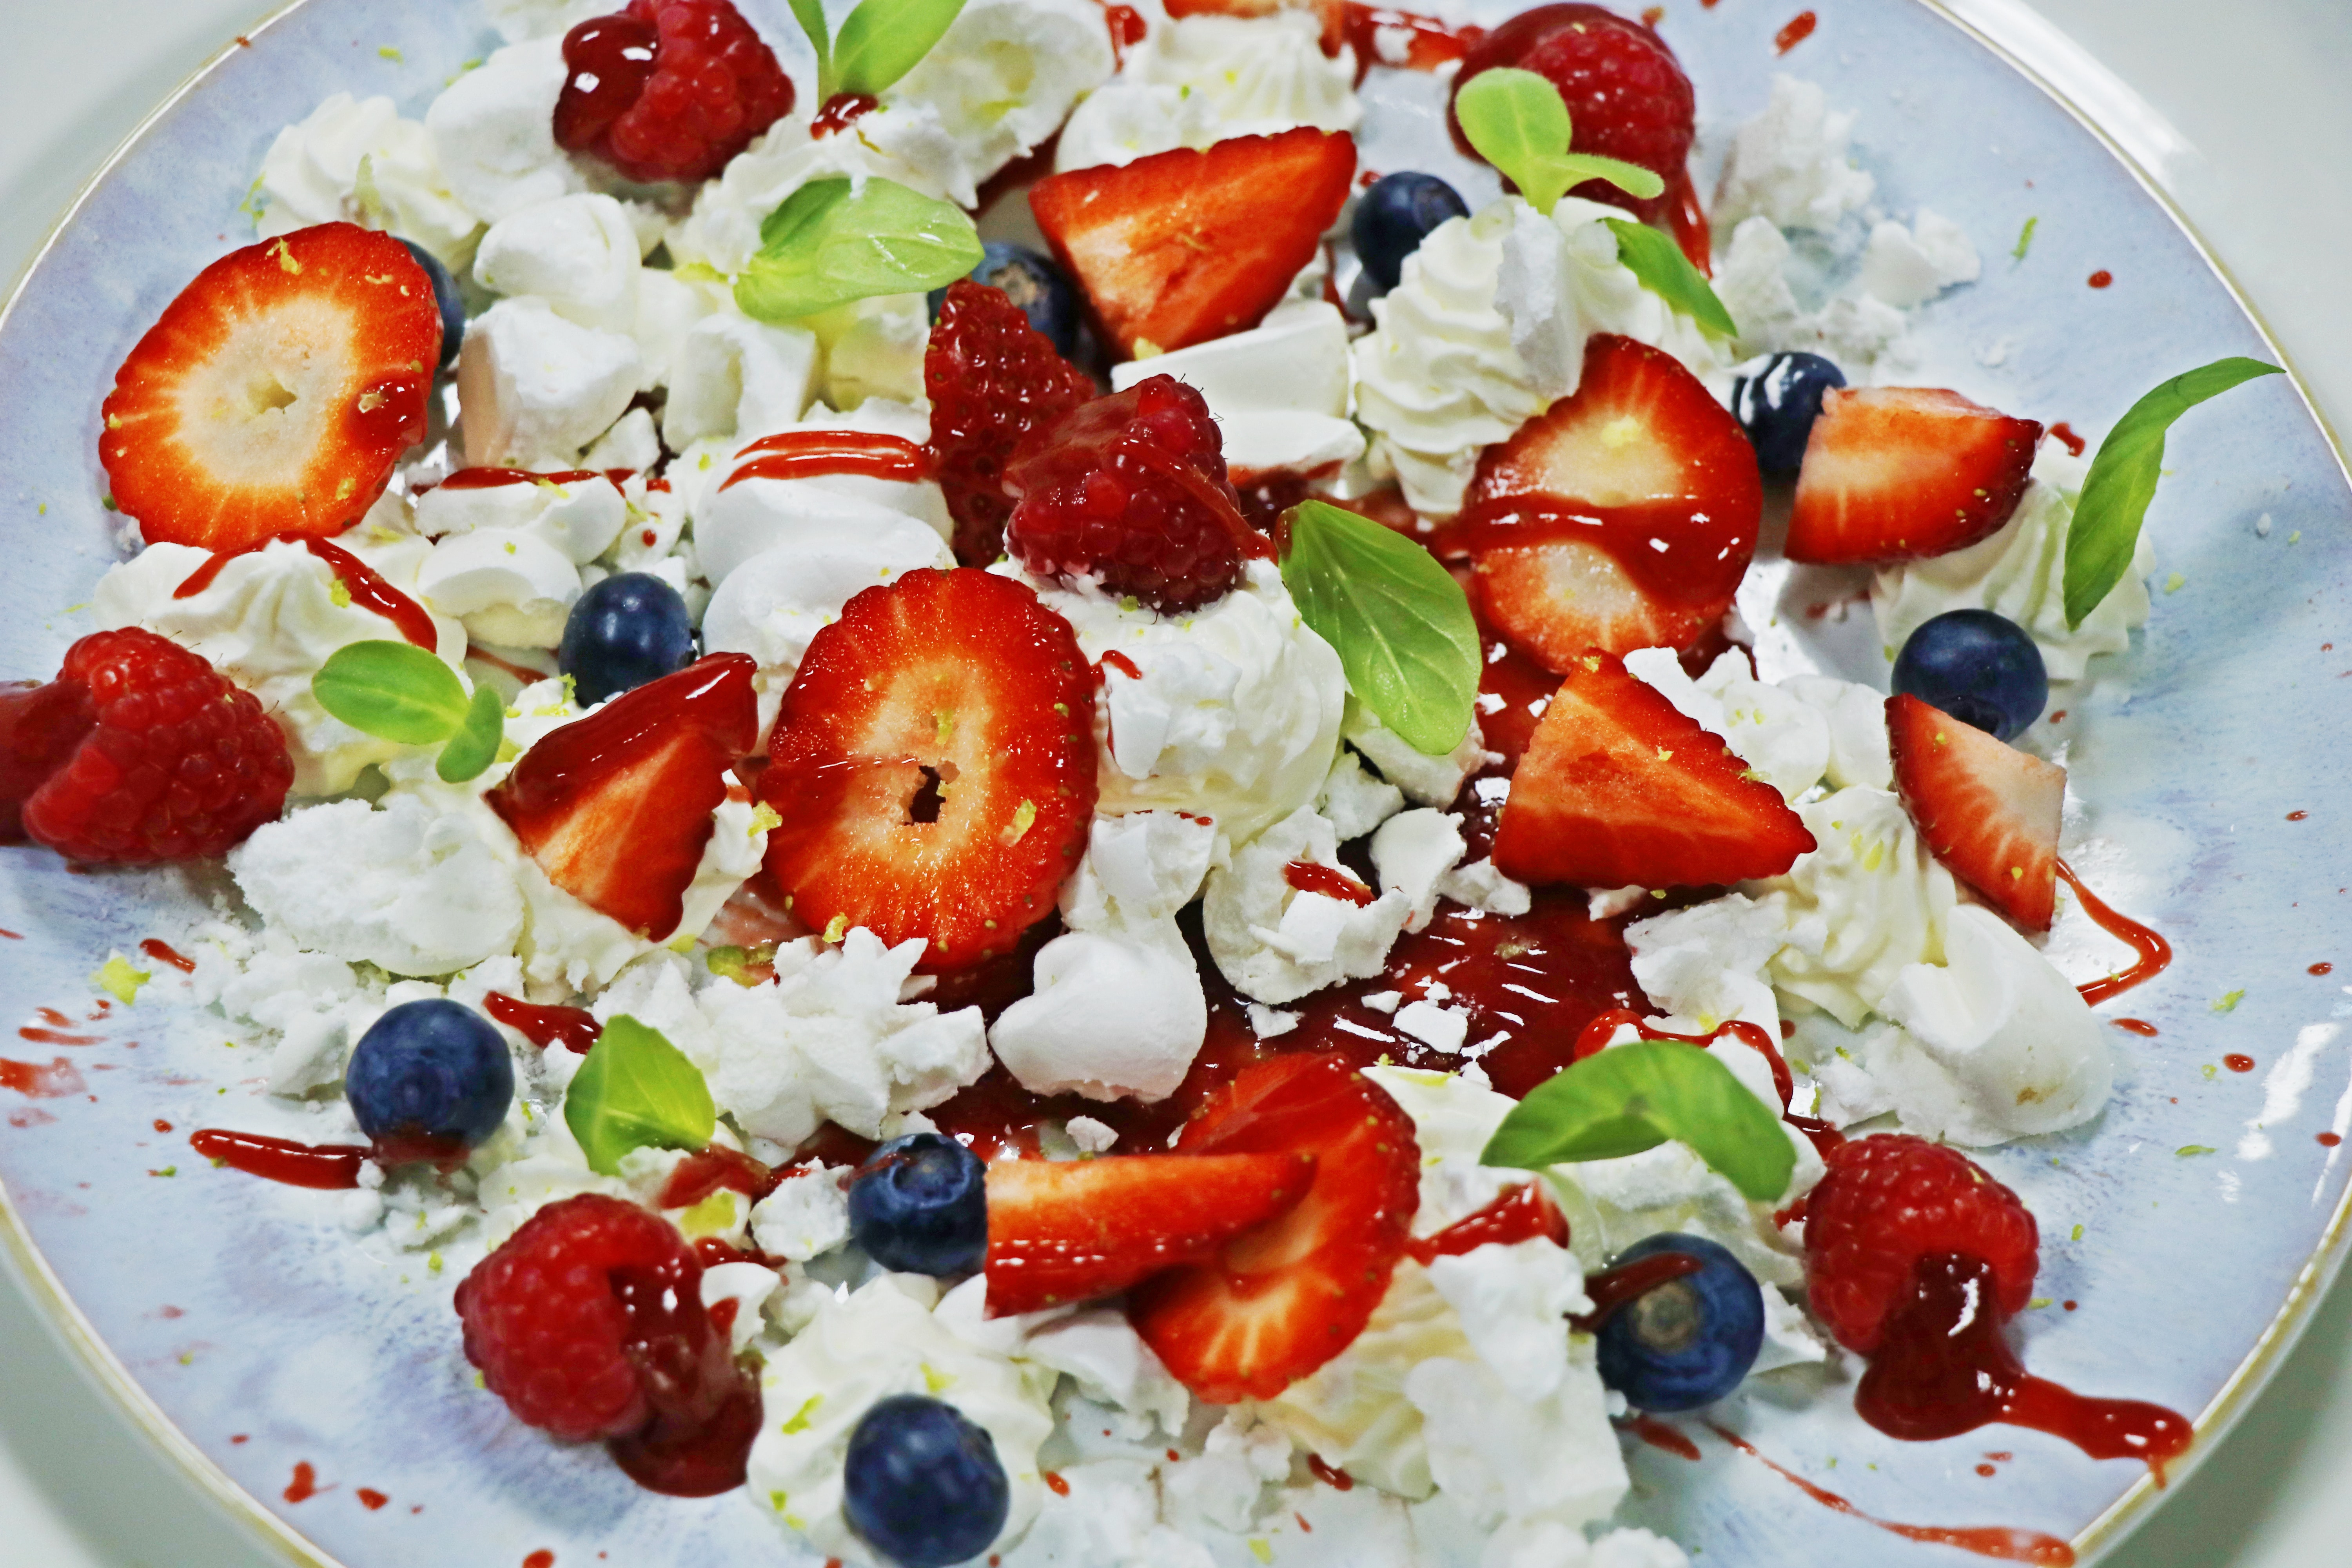 Eton mess traditional English dessert consisting of a mixture of strawberries, meringue, and whipped cream